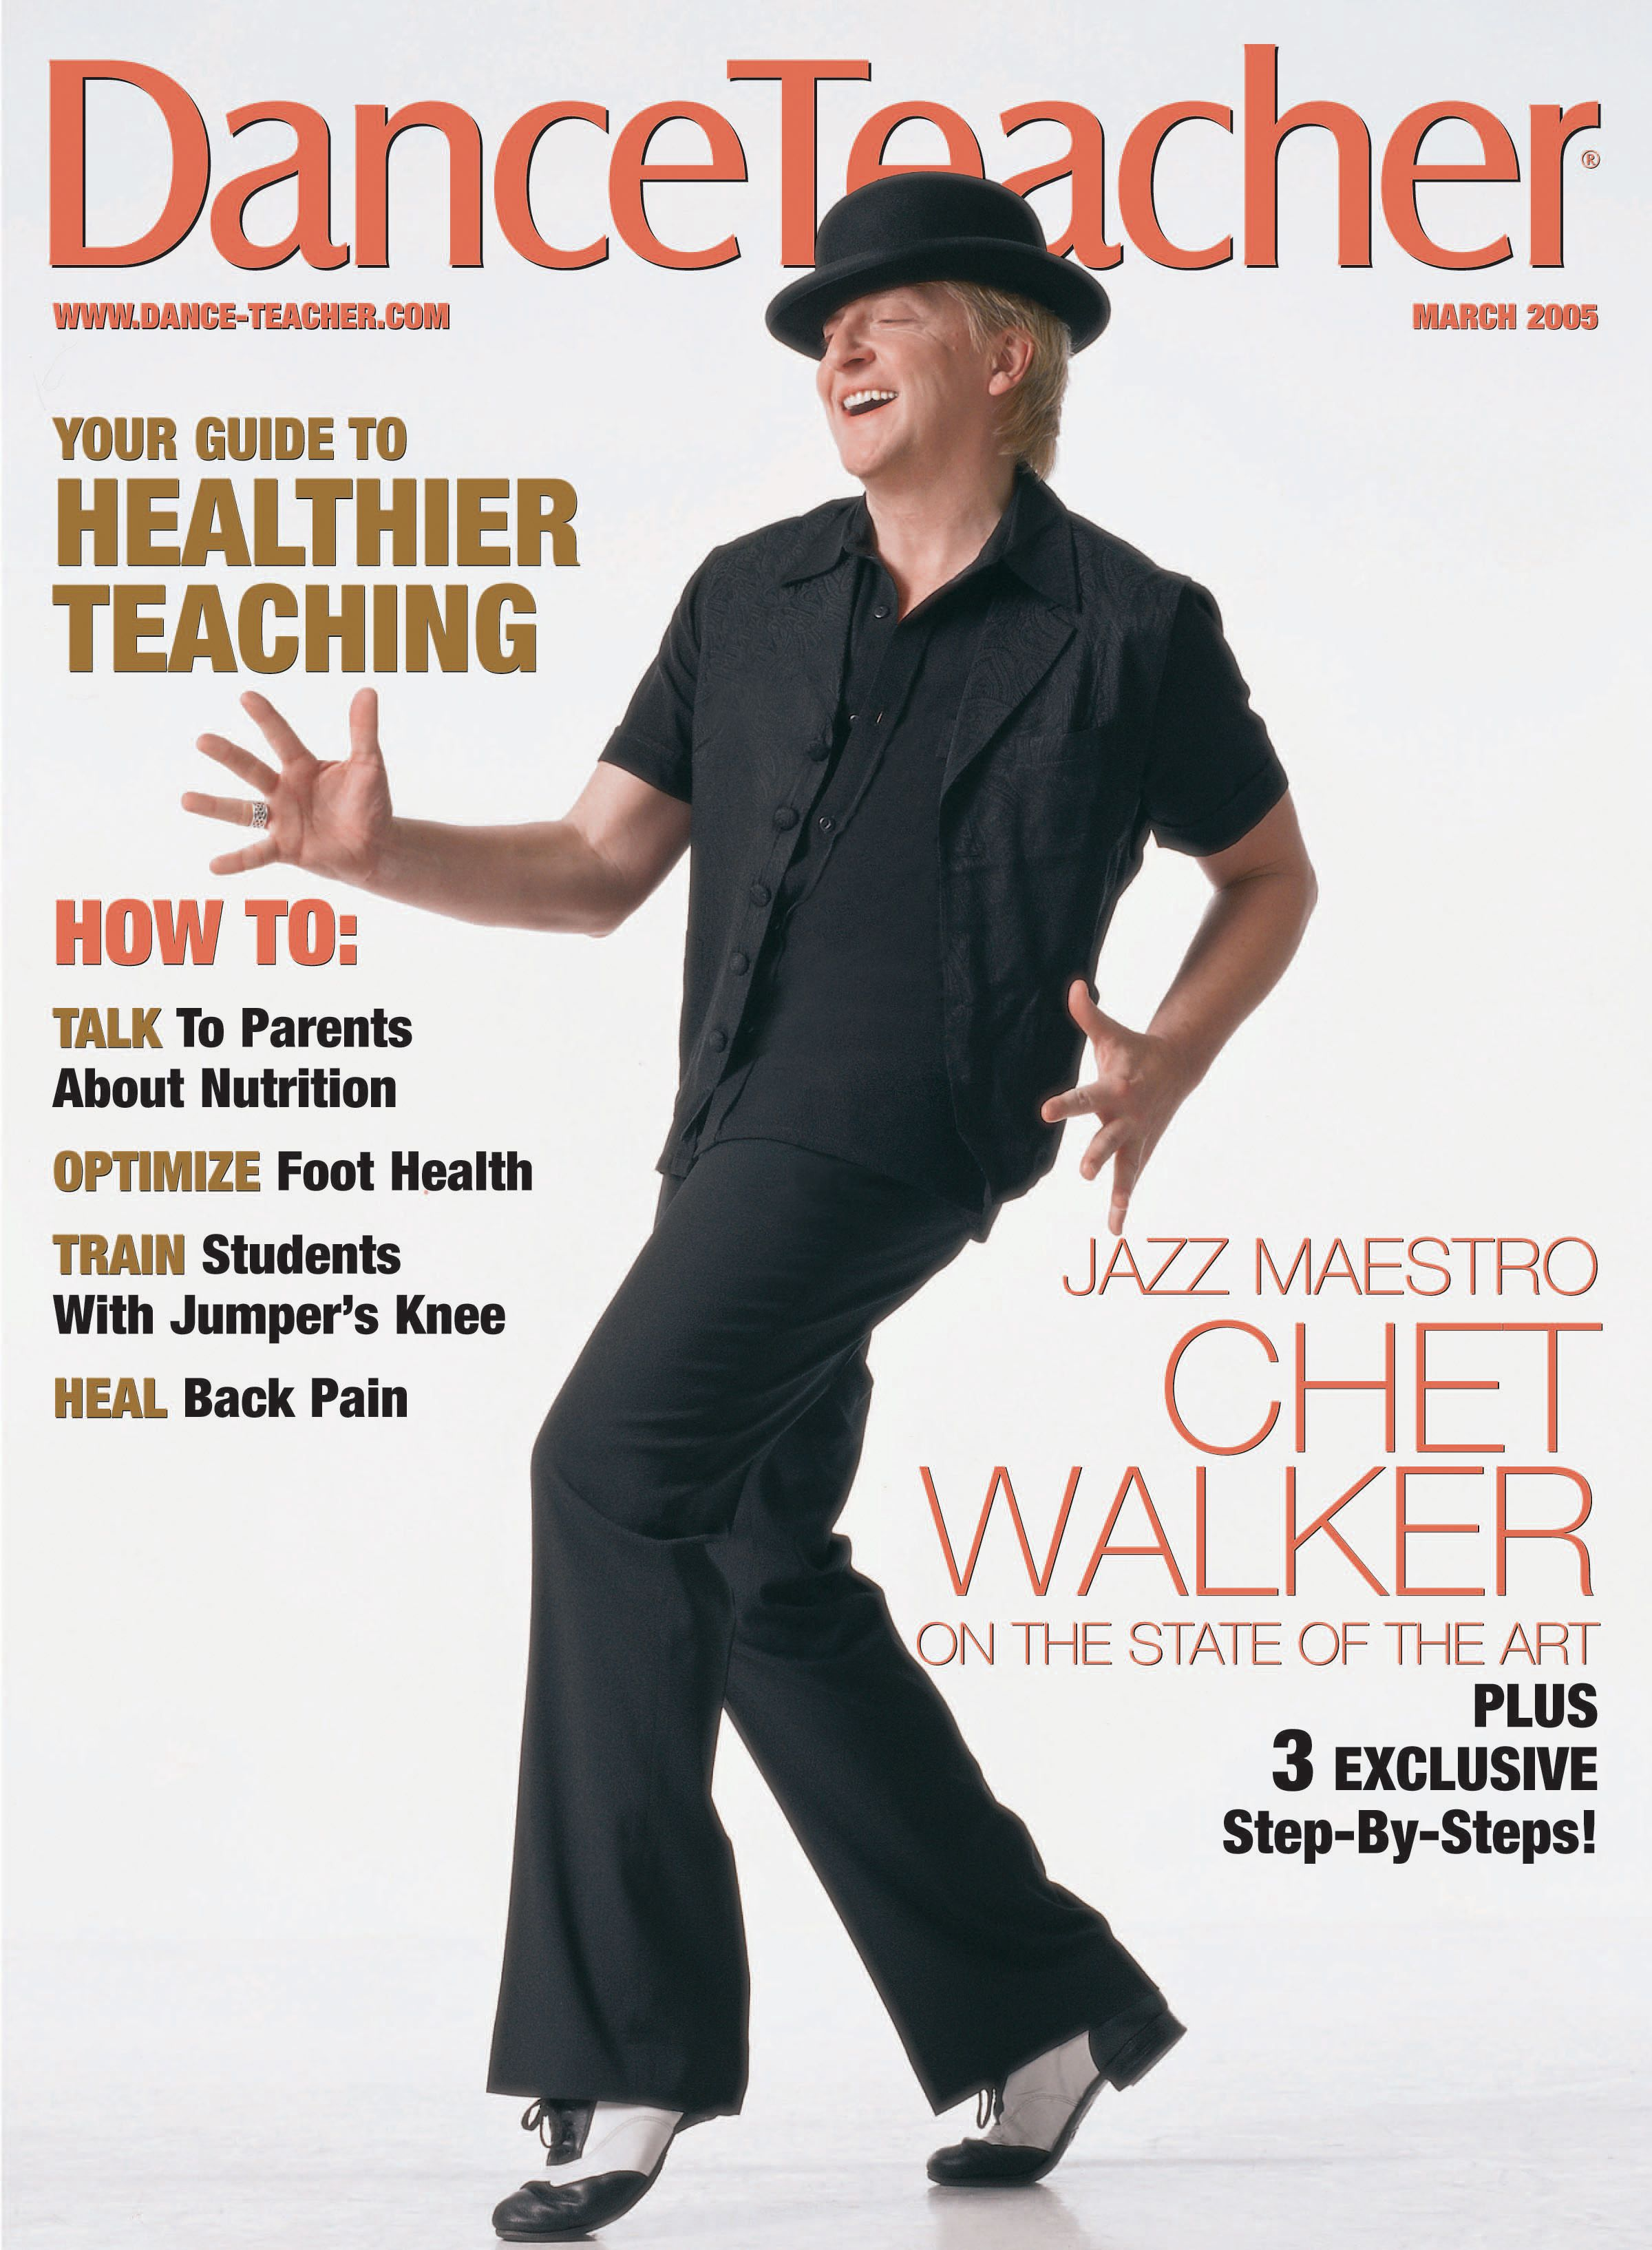 The legendary Chet Walker on Dance Teacher s March 2005 cover